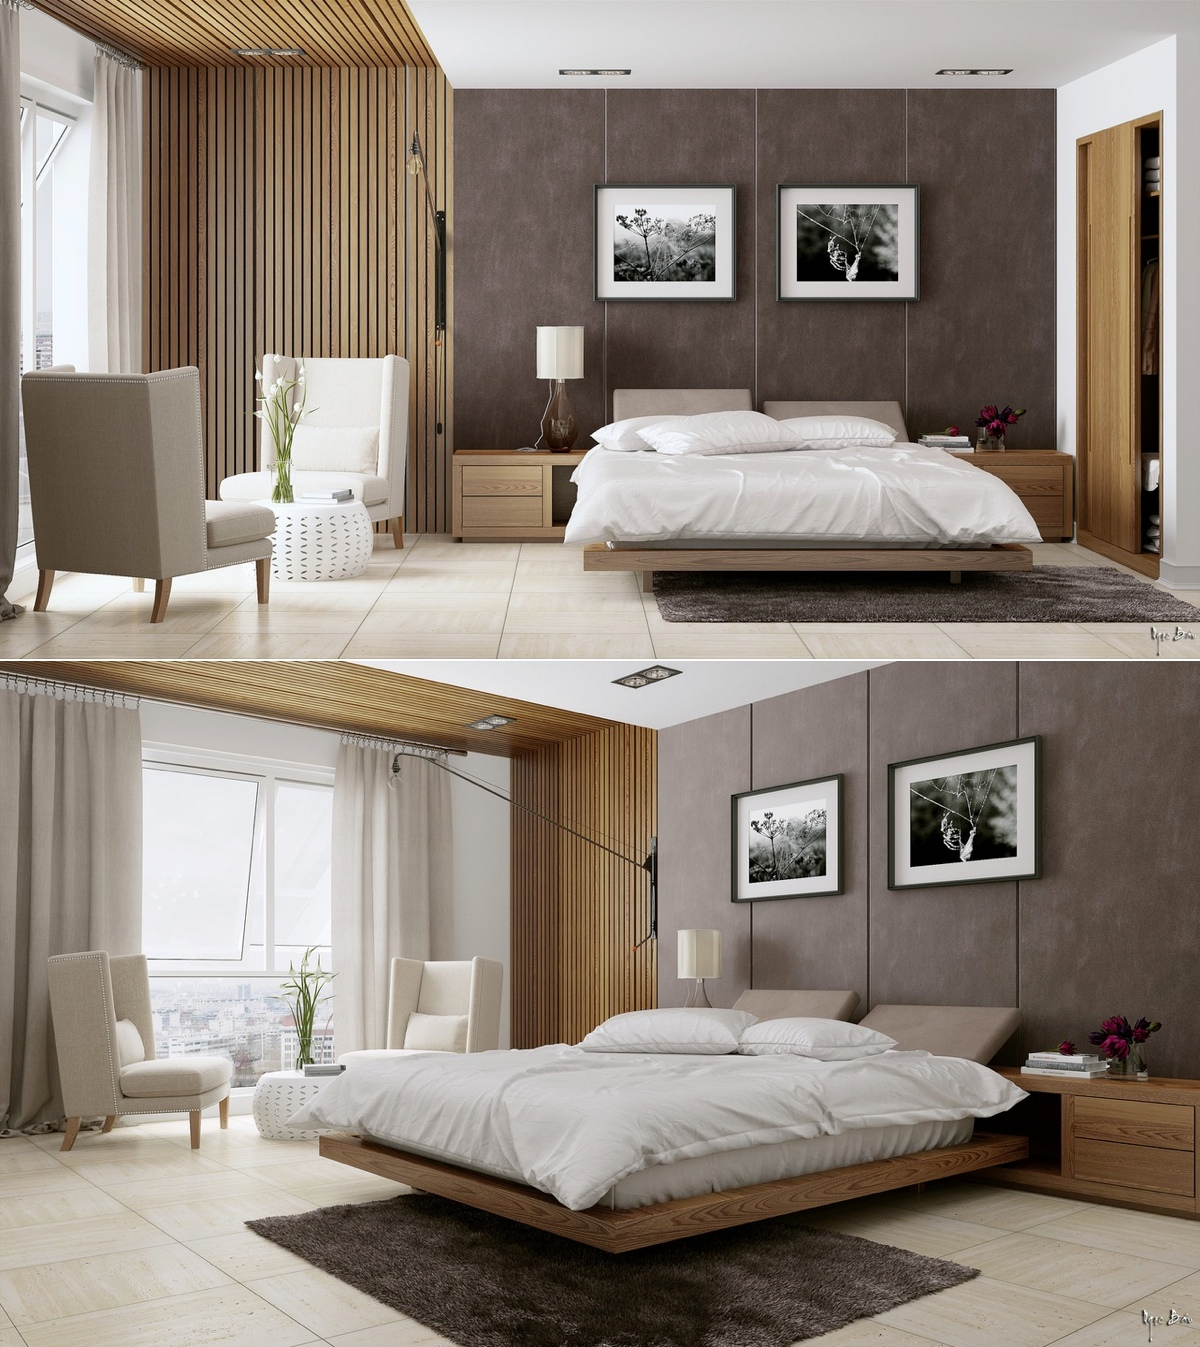 stylish bedroom designs with beautiful creative details. Black Bedroom Furniture Sets. Home Design Ideas